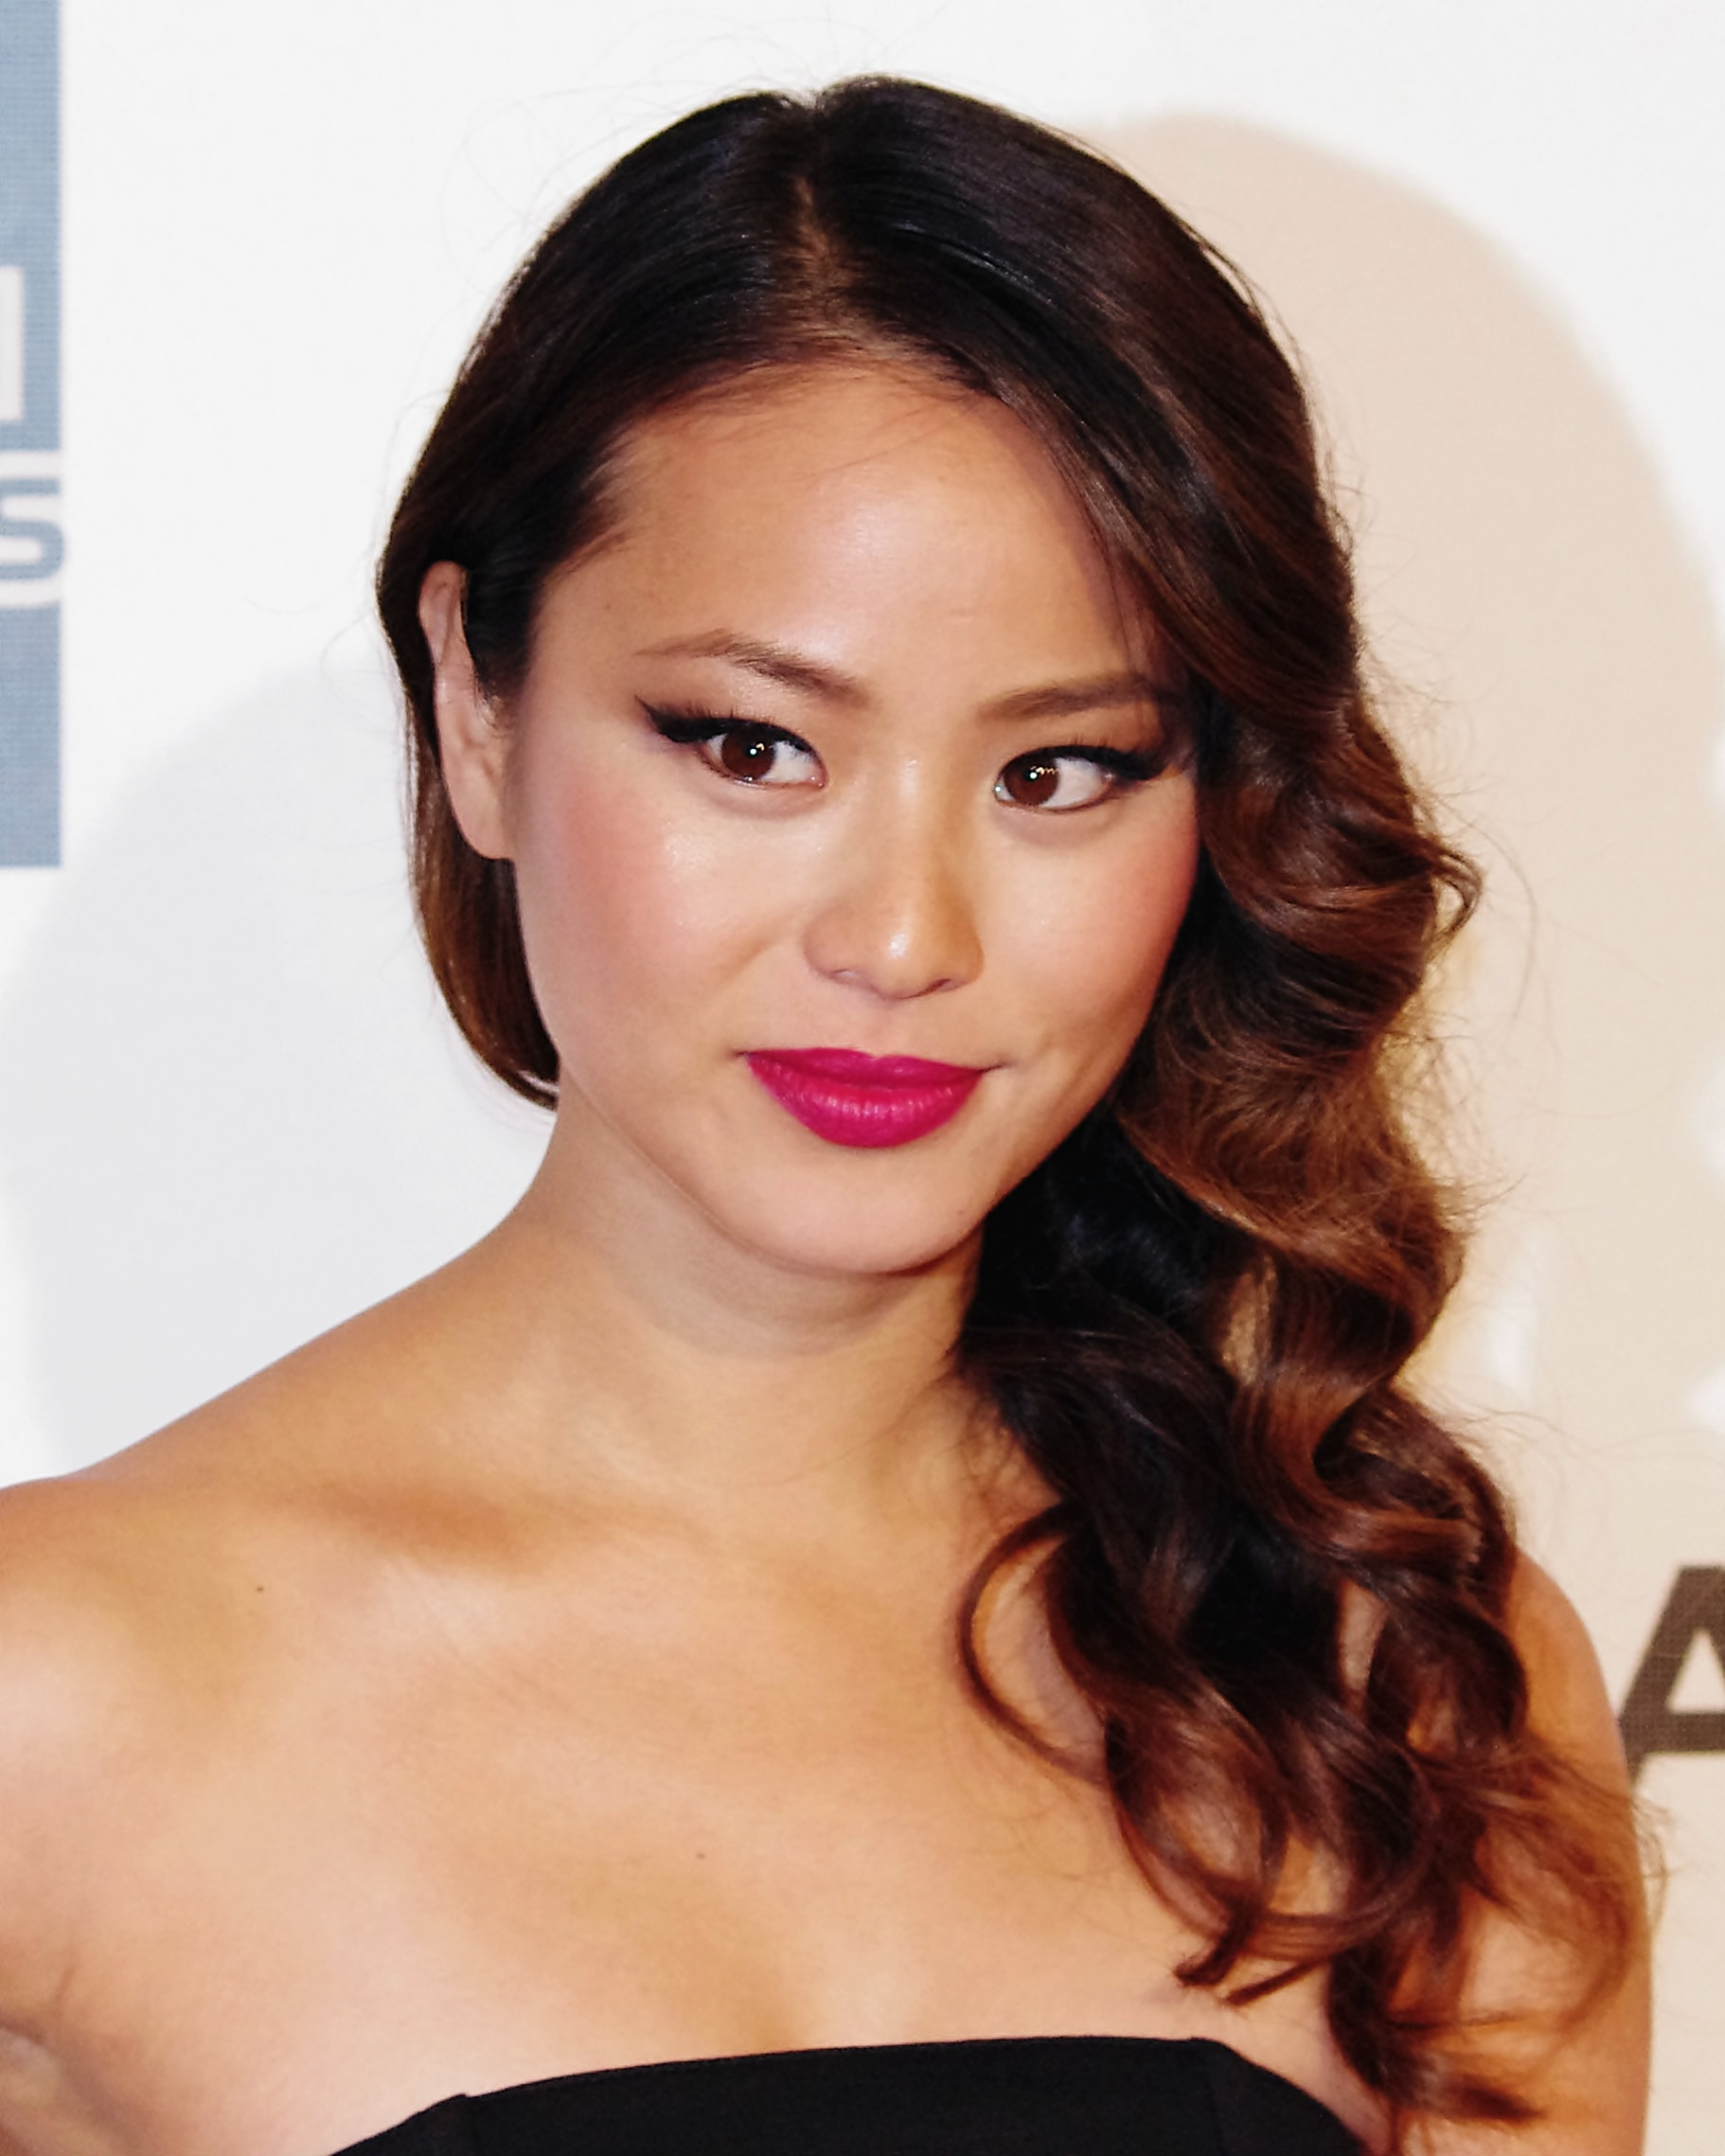 Jamie Chung Wallpapers hd